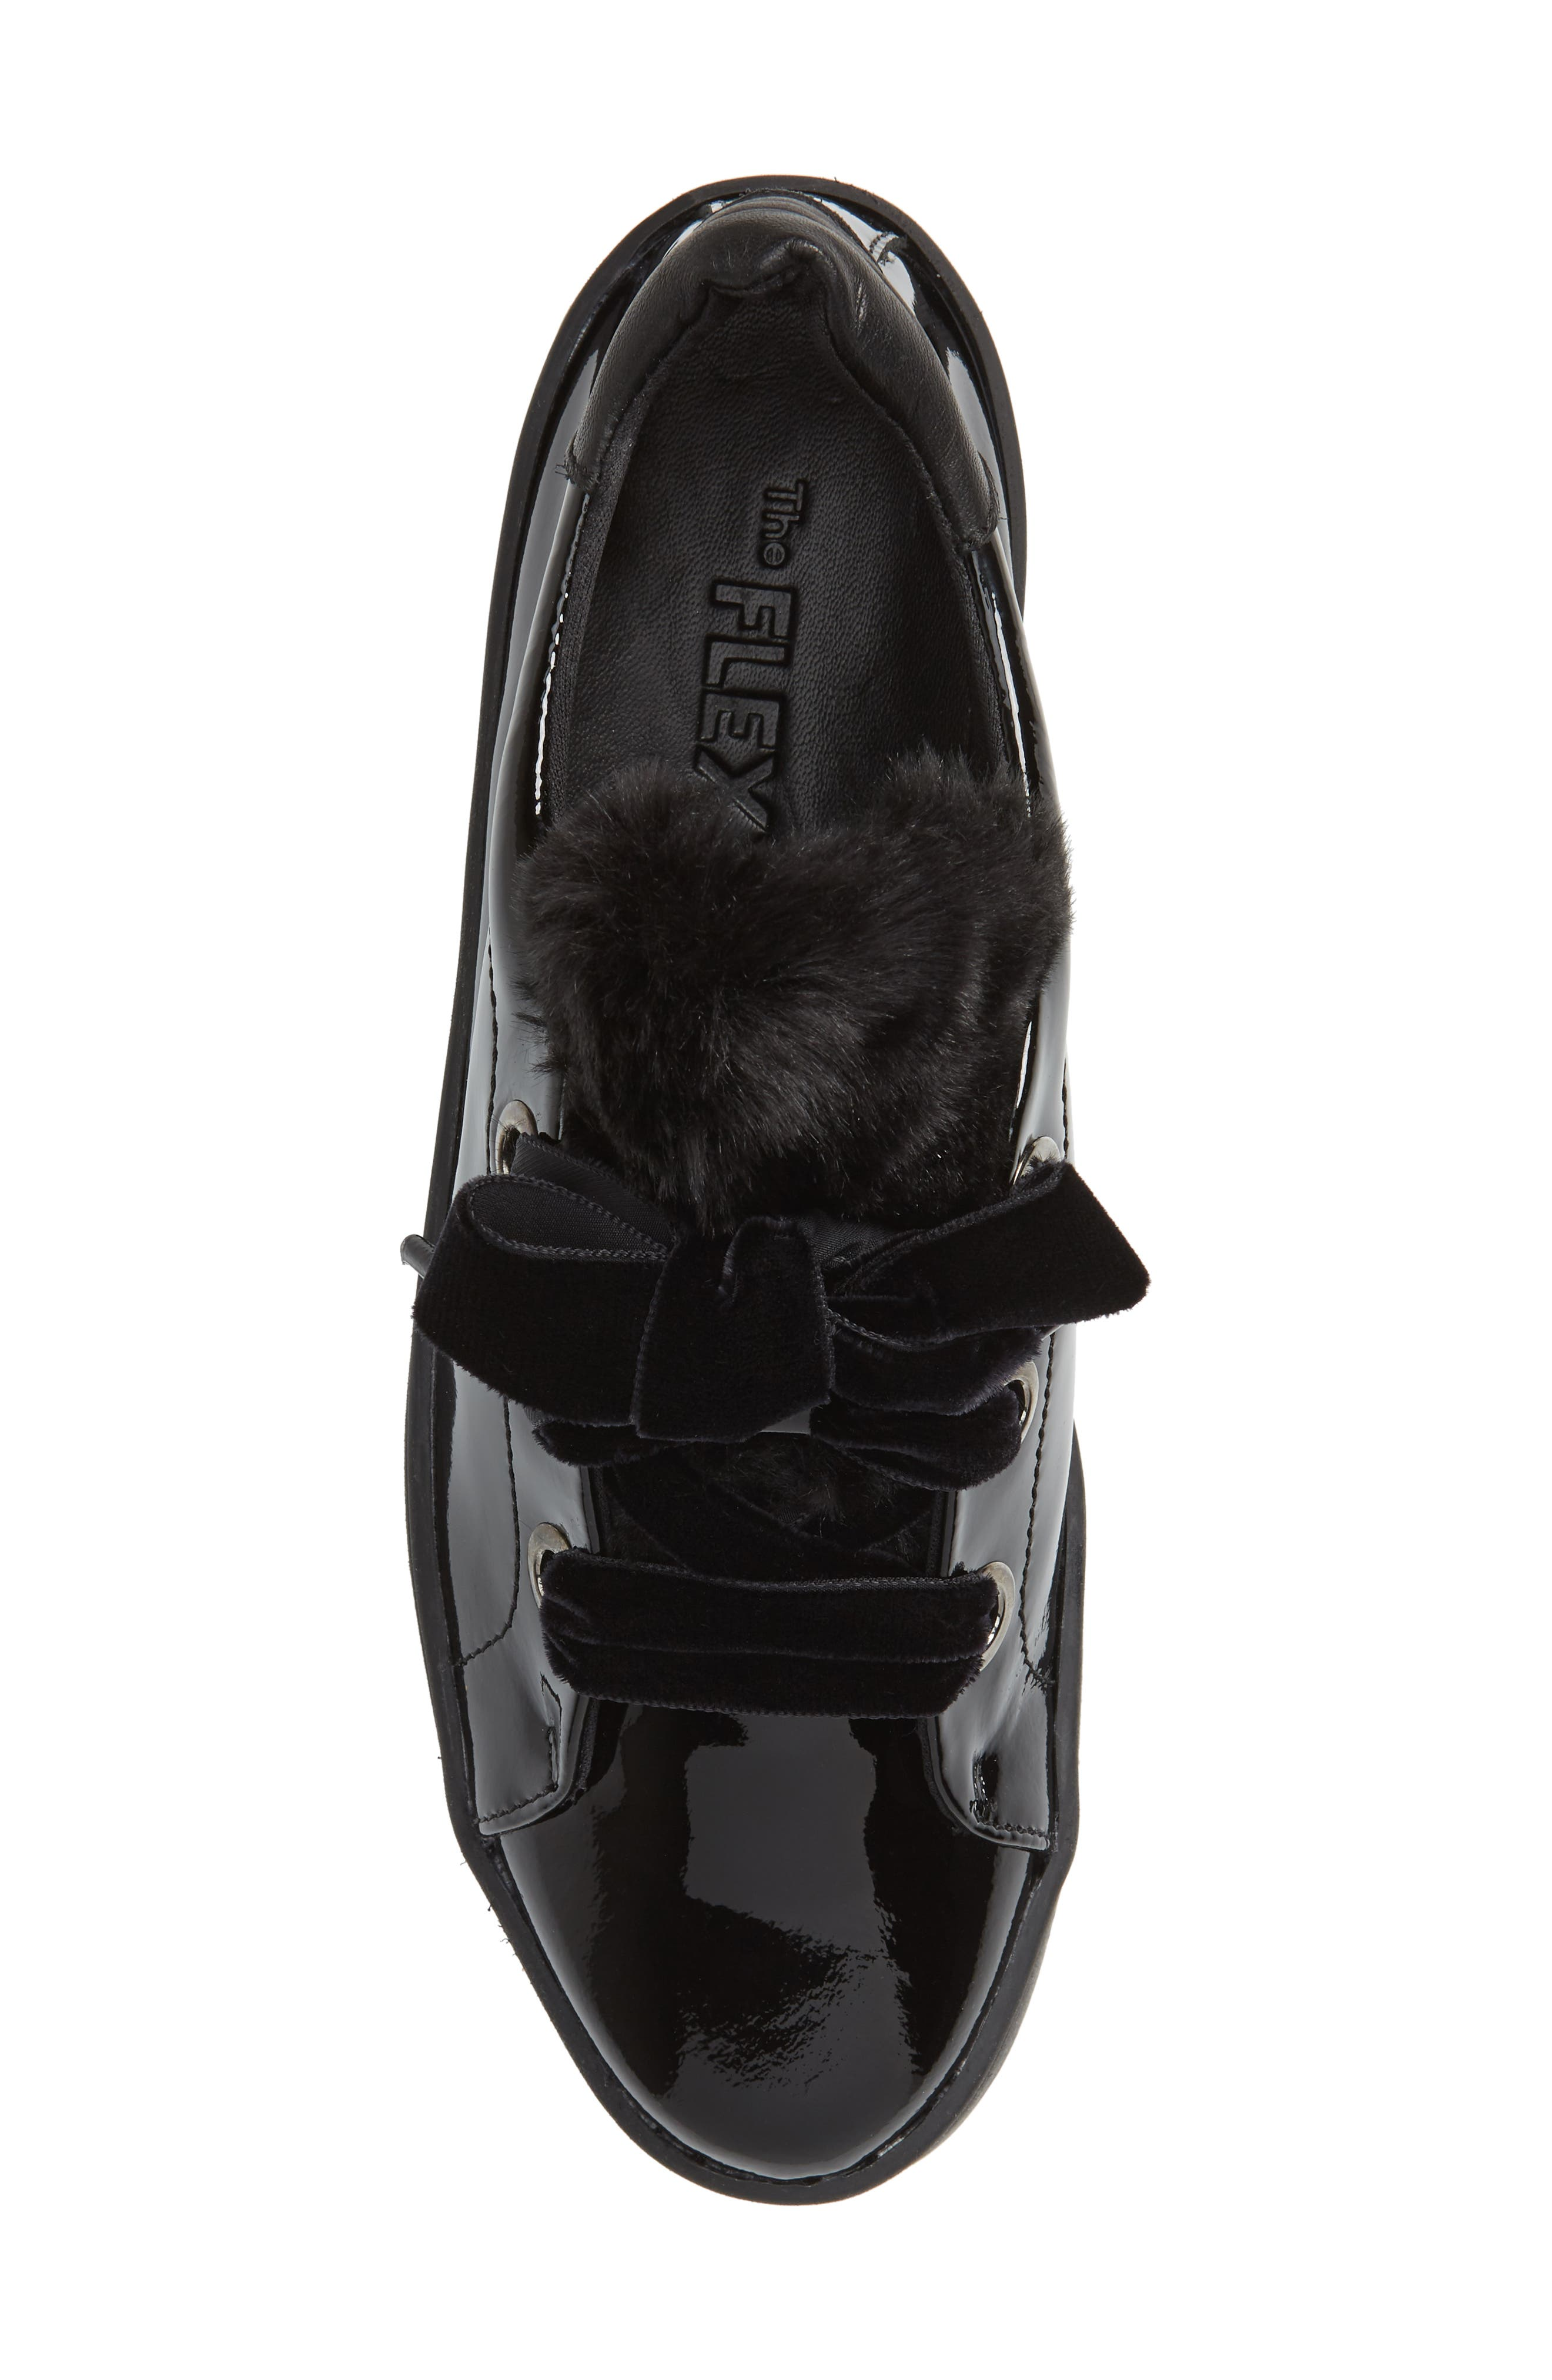 Groove Faux-Shearling Trim Sneaker,                             Alternate thumbnail 5, color,                             BLACK PATENT LEATHER